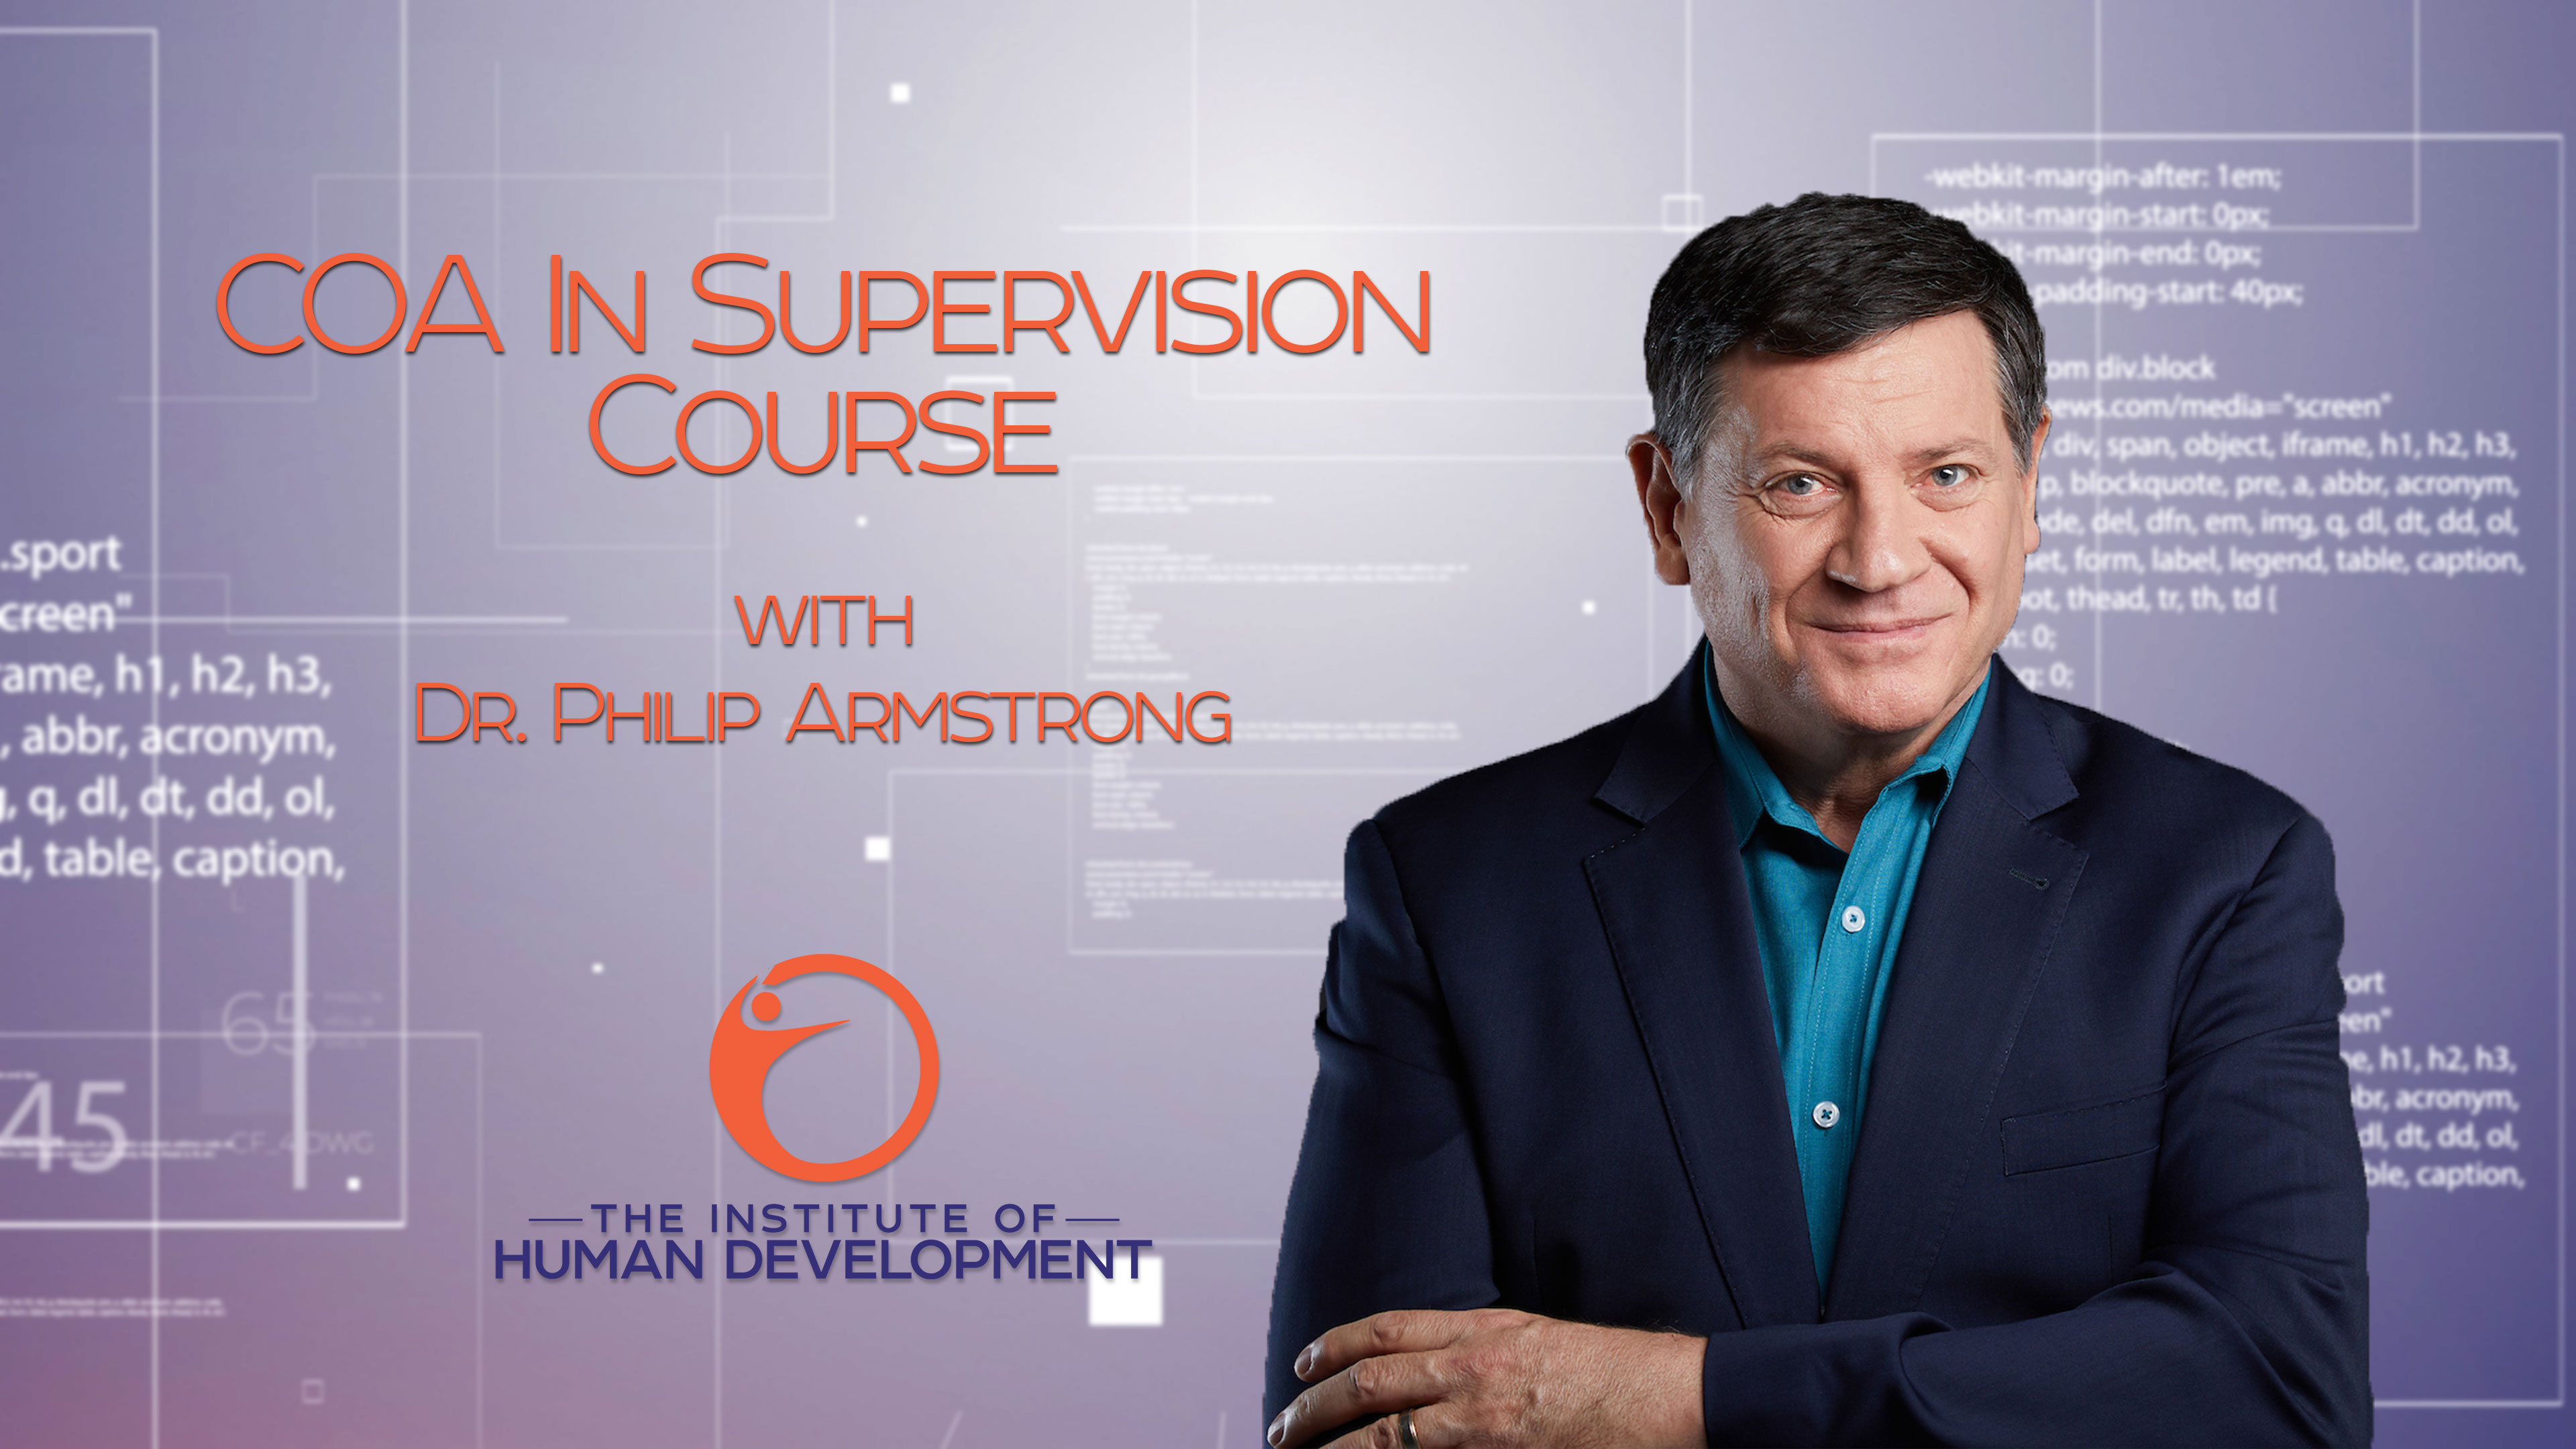 Supervision Theory